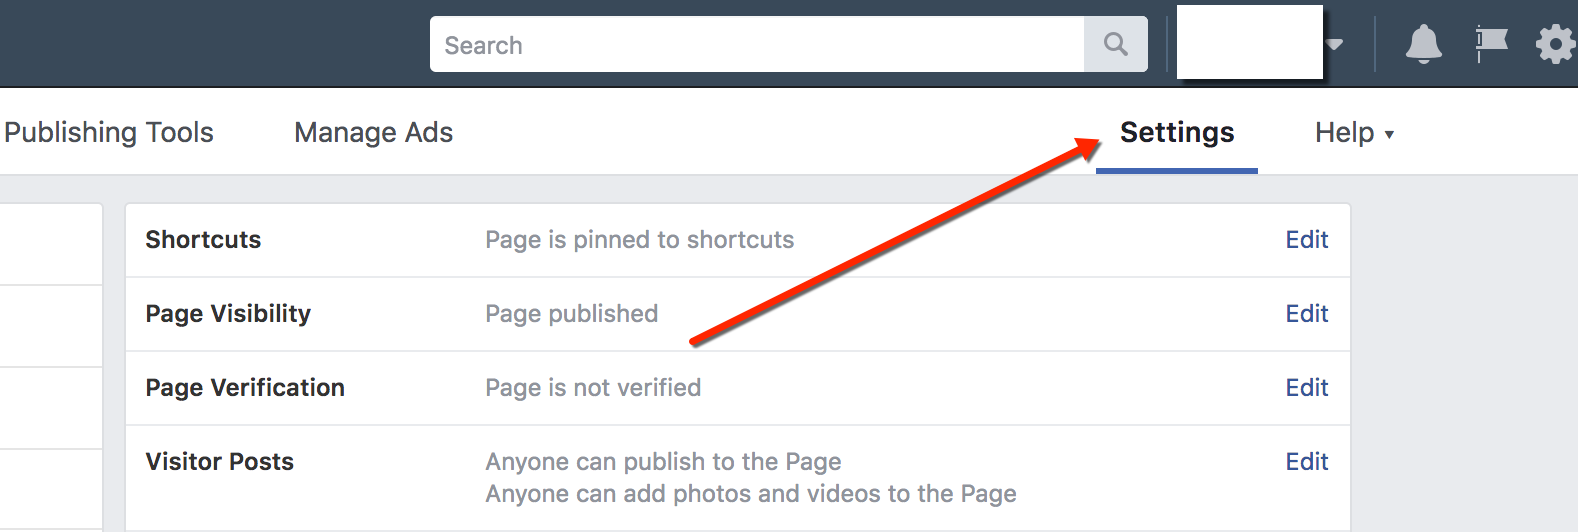 Facebook Business Page Settings Selection